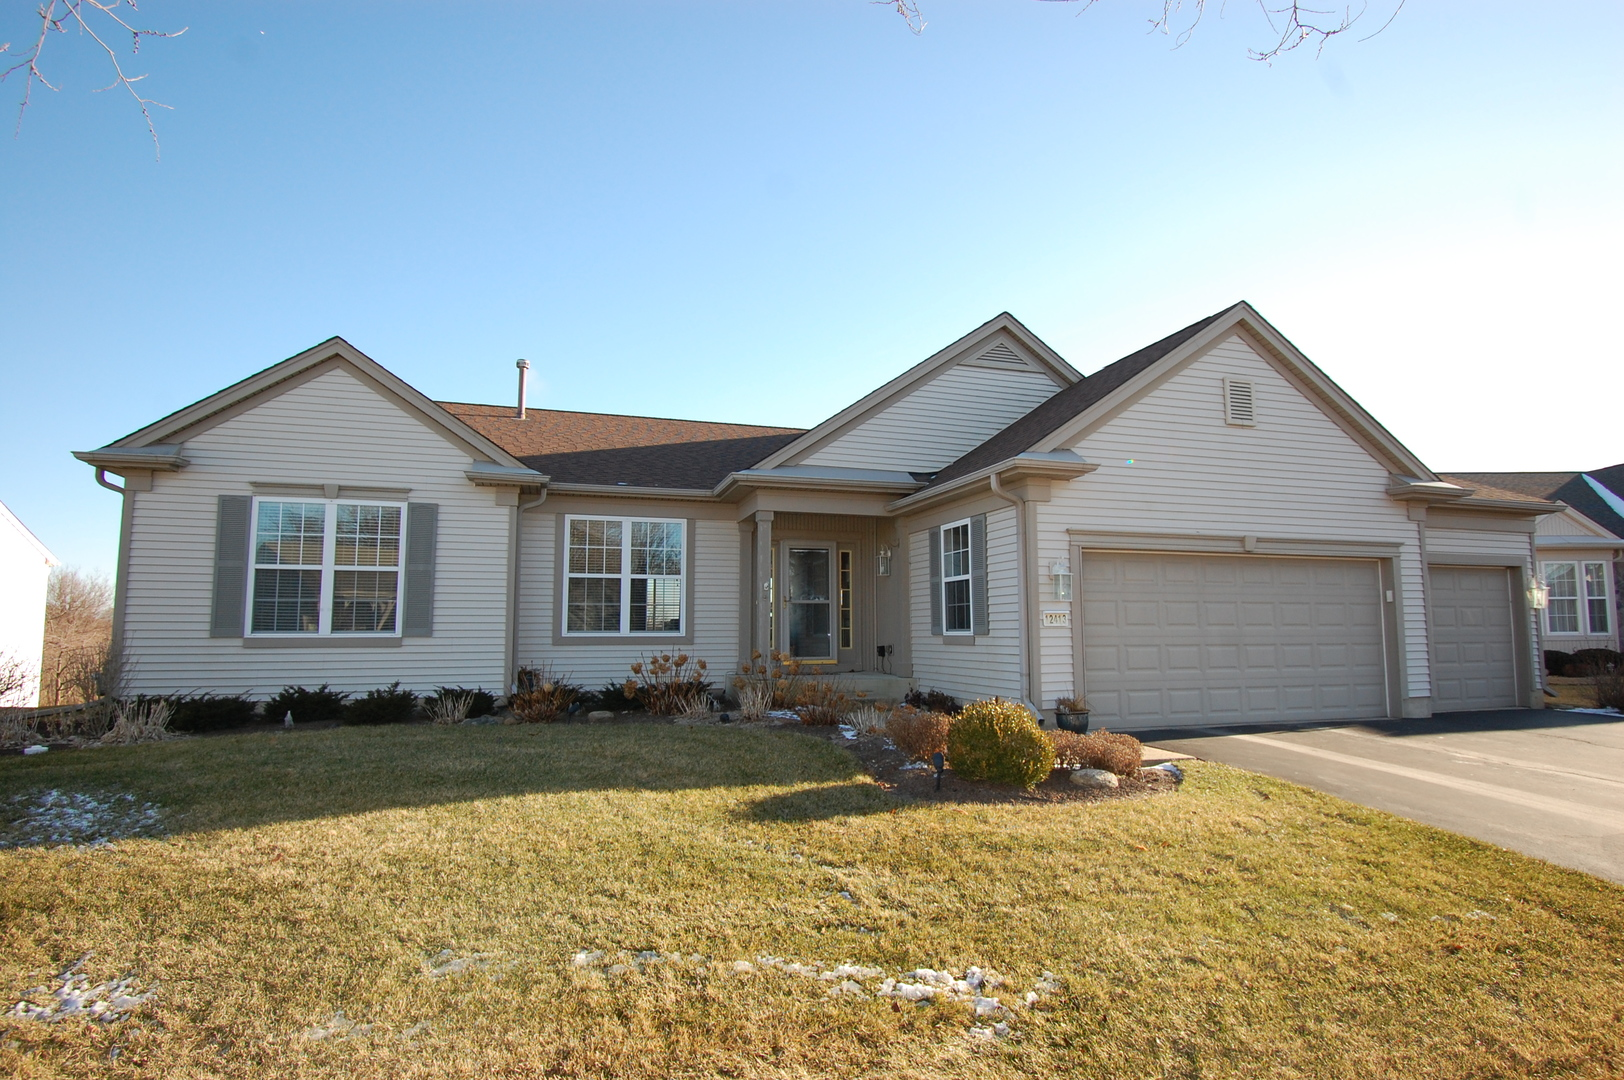 Photo for 12413 Foxtail Lane, Huntley, IL 60142 (MLS # 10612841)